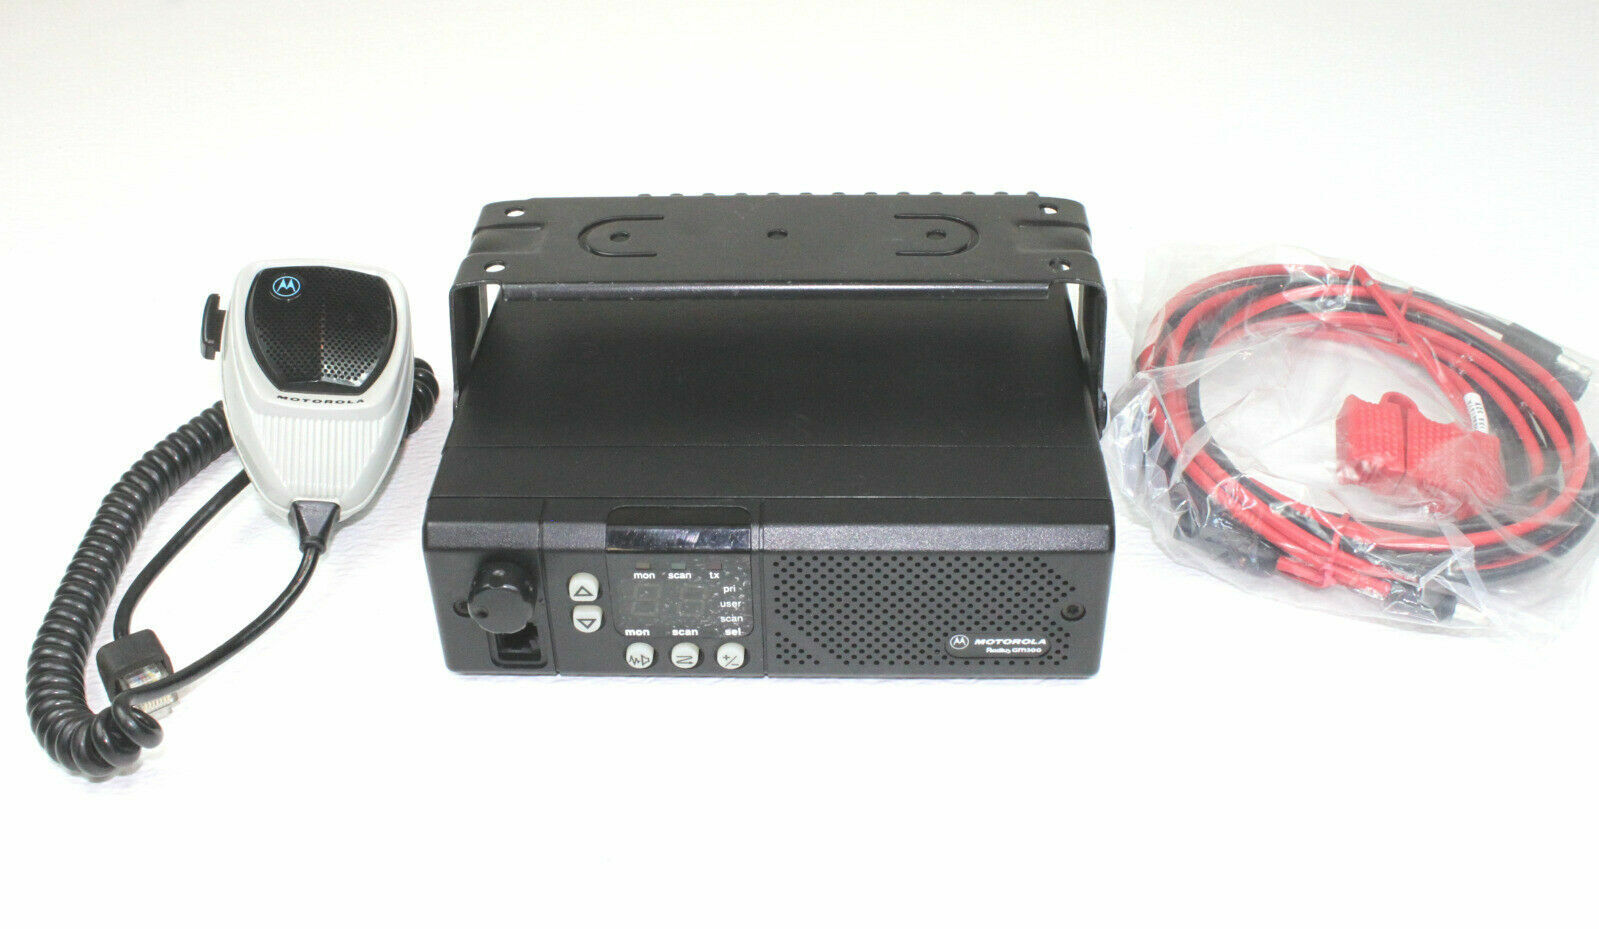 Motorola GM300 VHF 146-174 Mhz 16 Ch 45 Watts Mobile Radio COMPLETE. Available Now for 94.95